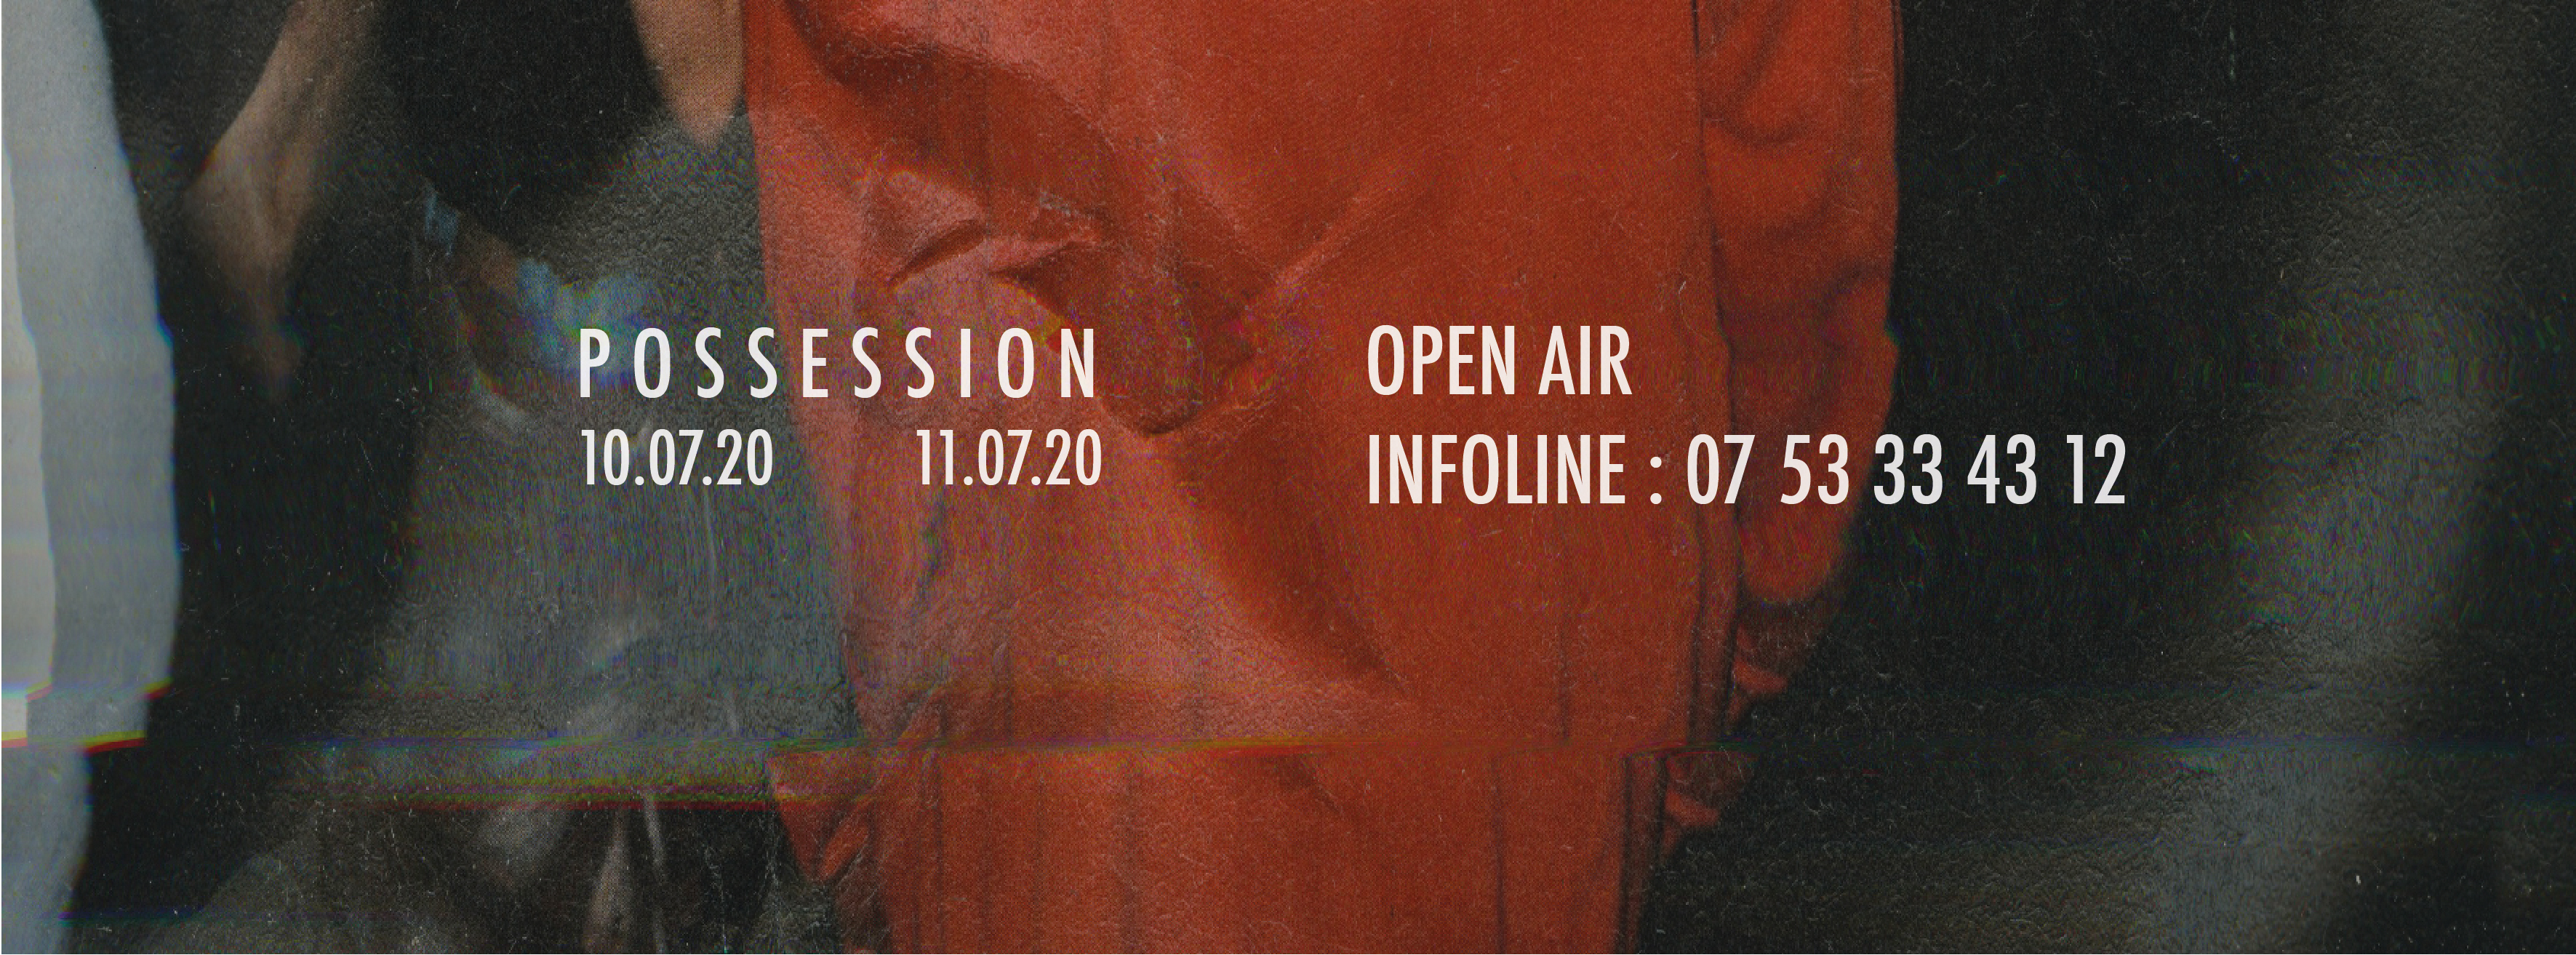 Possession ■ Open Air